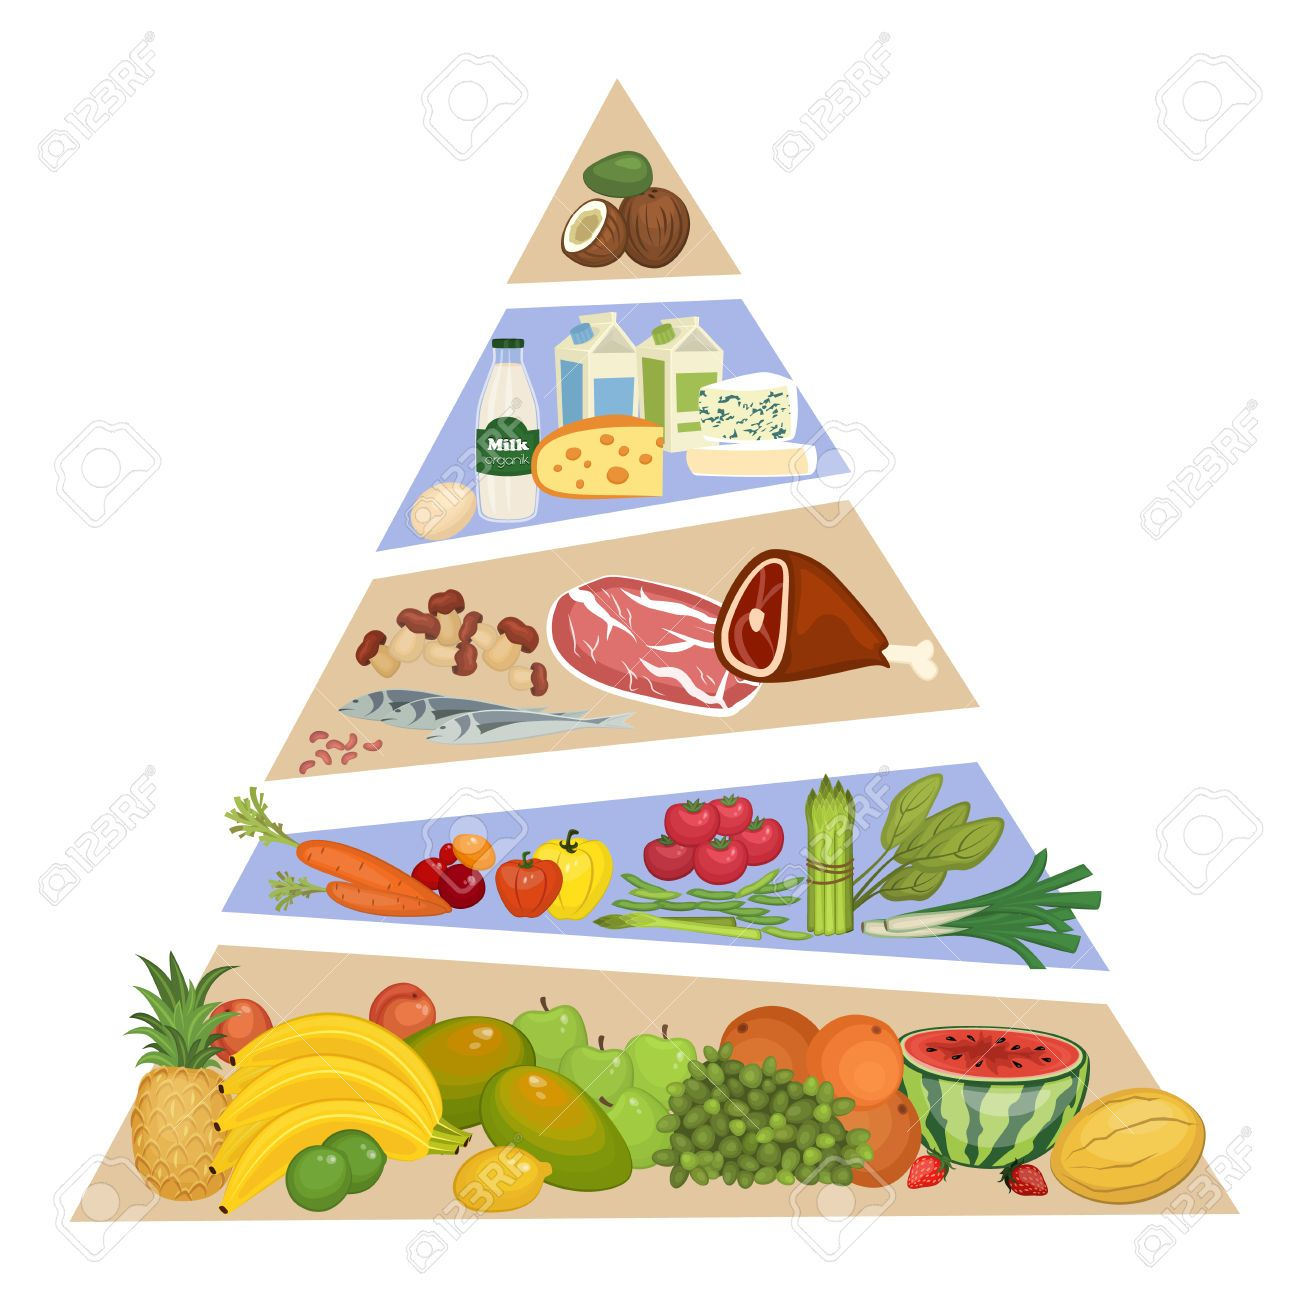 Stock Photo Food Pyramid Kids Meal Plan Cooking Classes